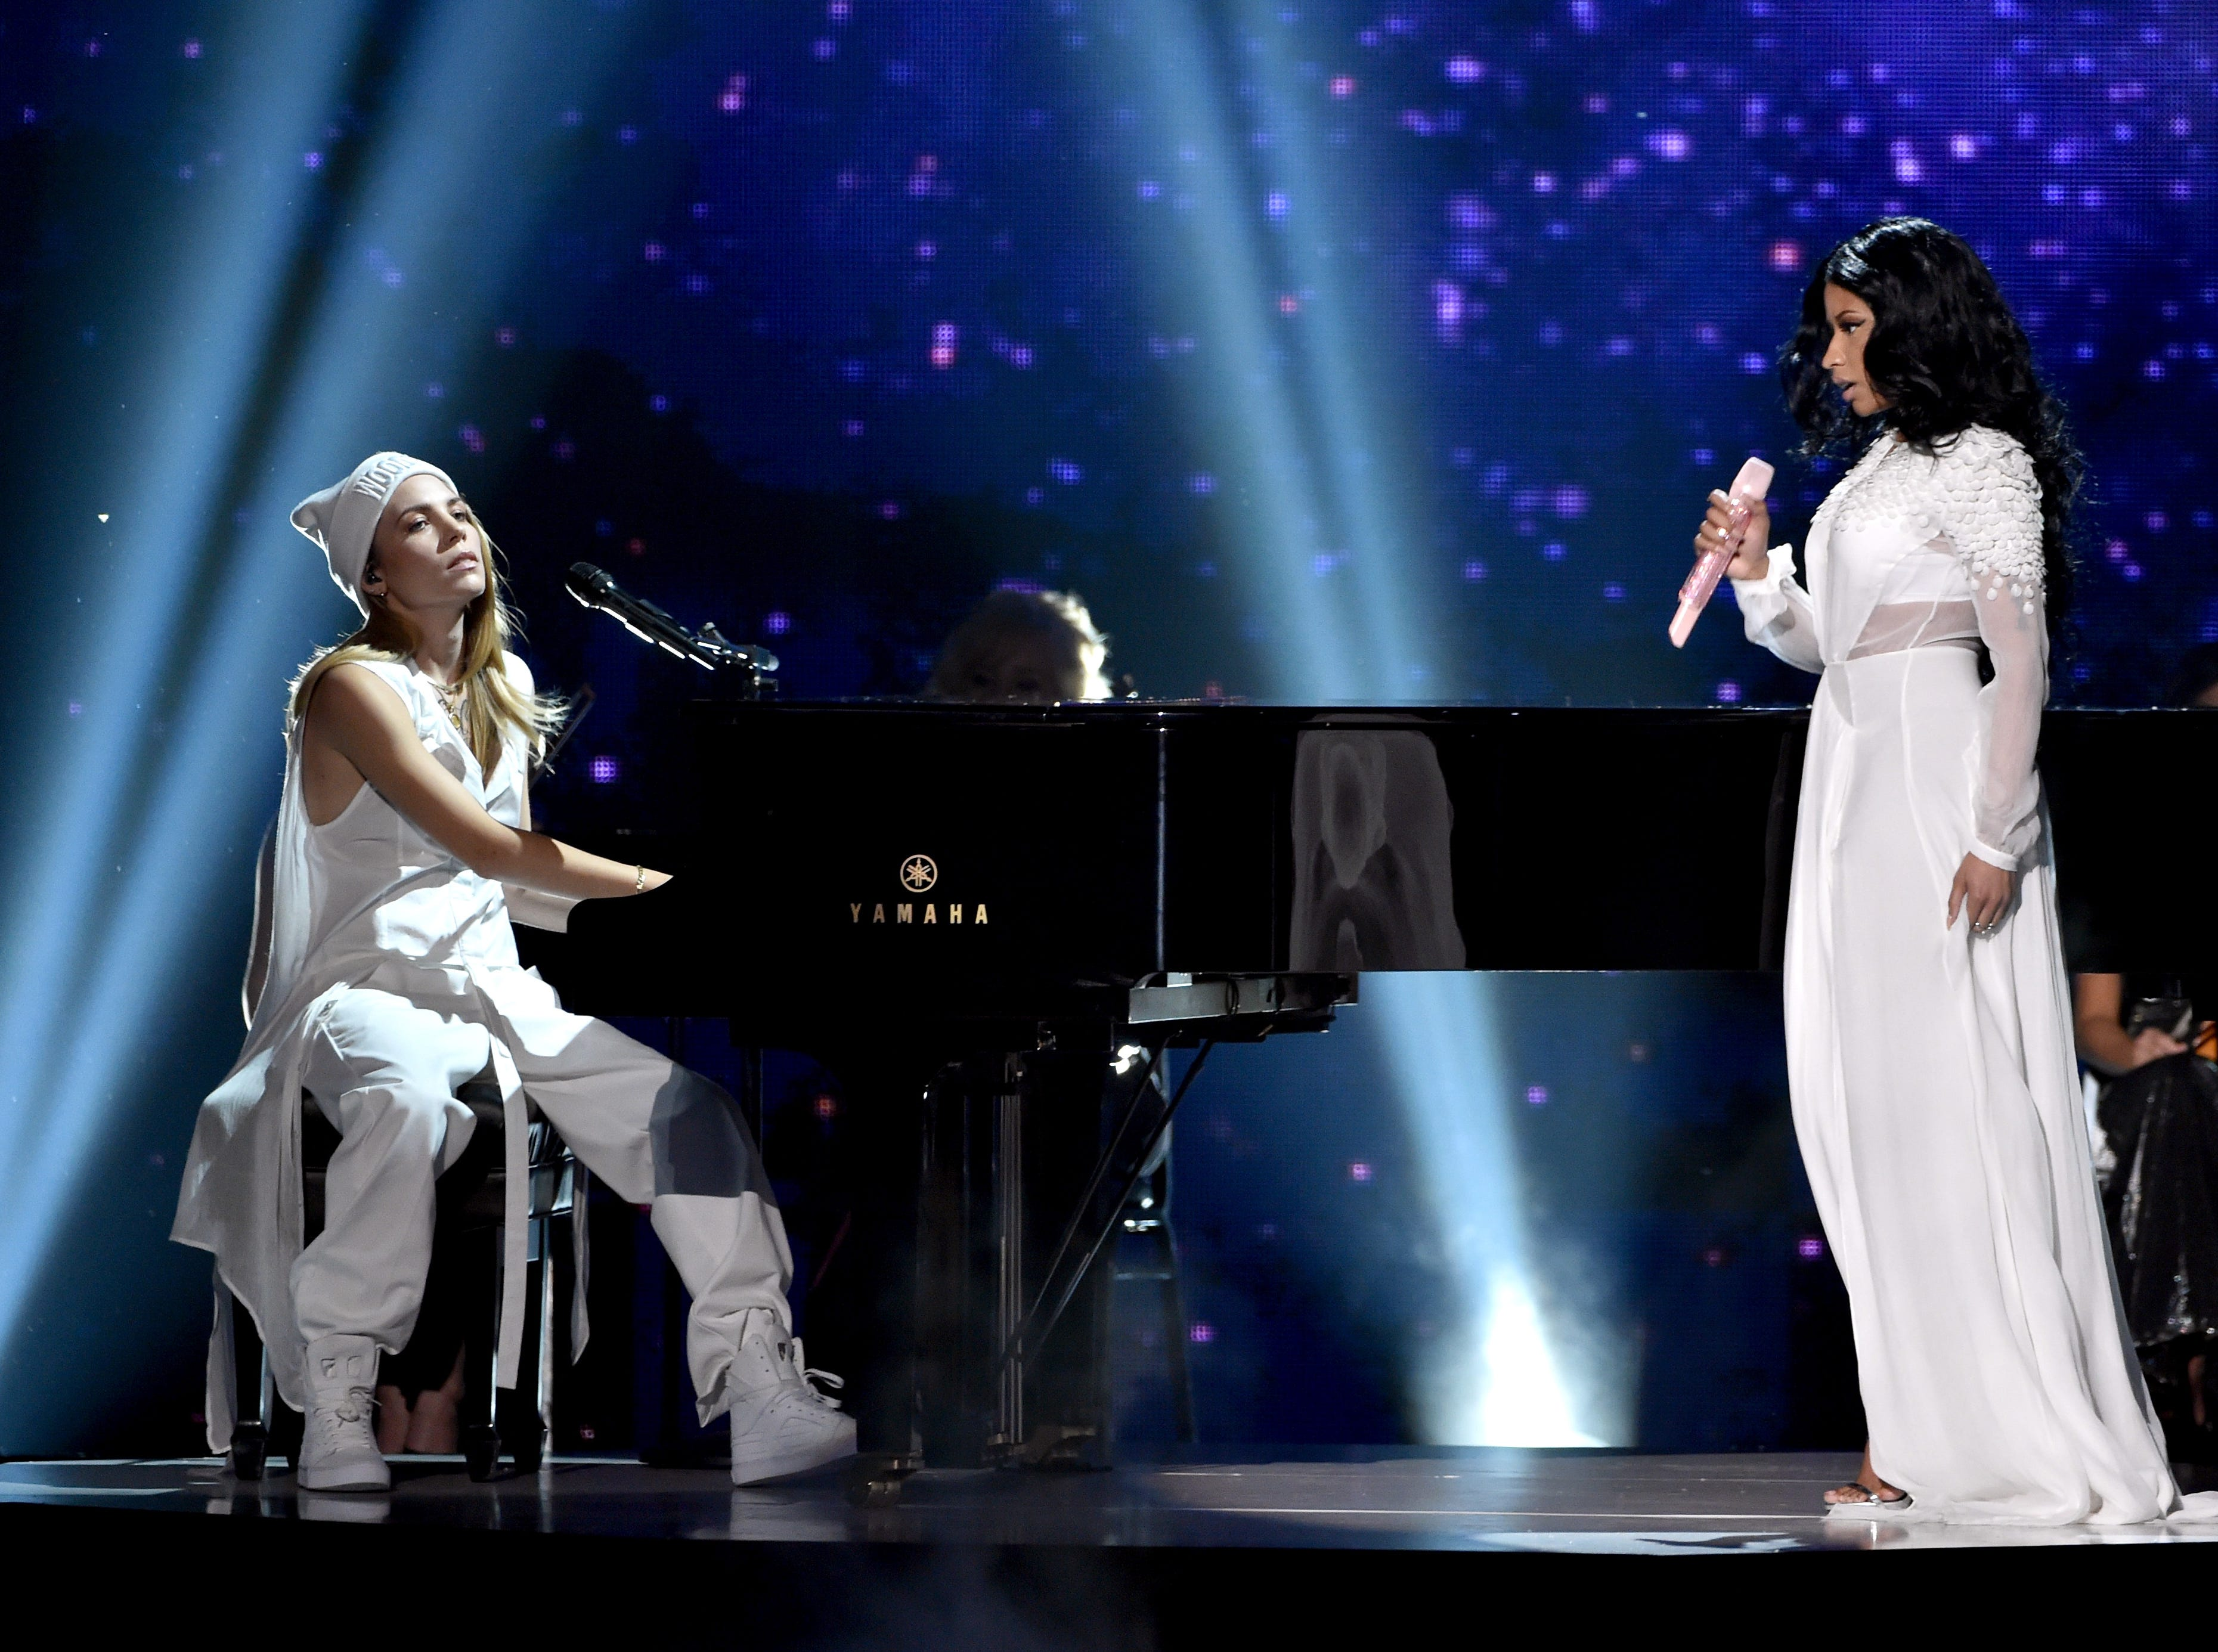 LOS ANGELES, CA - NOVEMBER 23:  Recording artists Skylar Grey (L) and Nicki Minaj perform onstage at the 2014 American Music Awards at Nokia Theatre L.A. Live on November 23, 2014 in Los Angeles, California.  (Photo by Kevin Winter/Getty Images) ORG XMIT: 522503943 ORIG FILE ID: 459486844